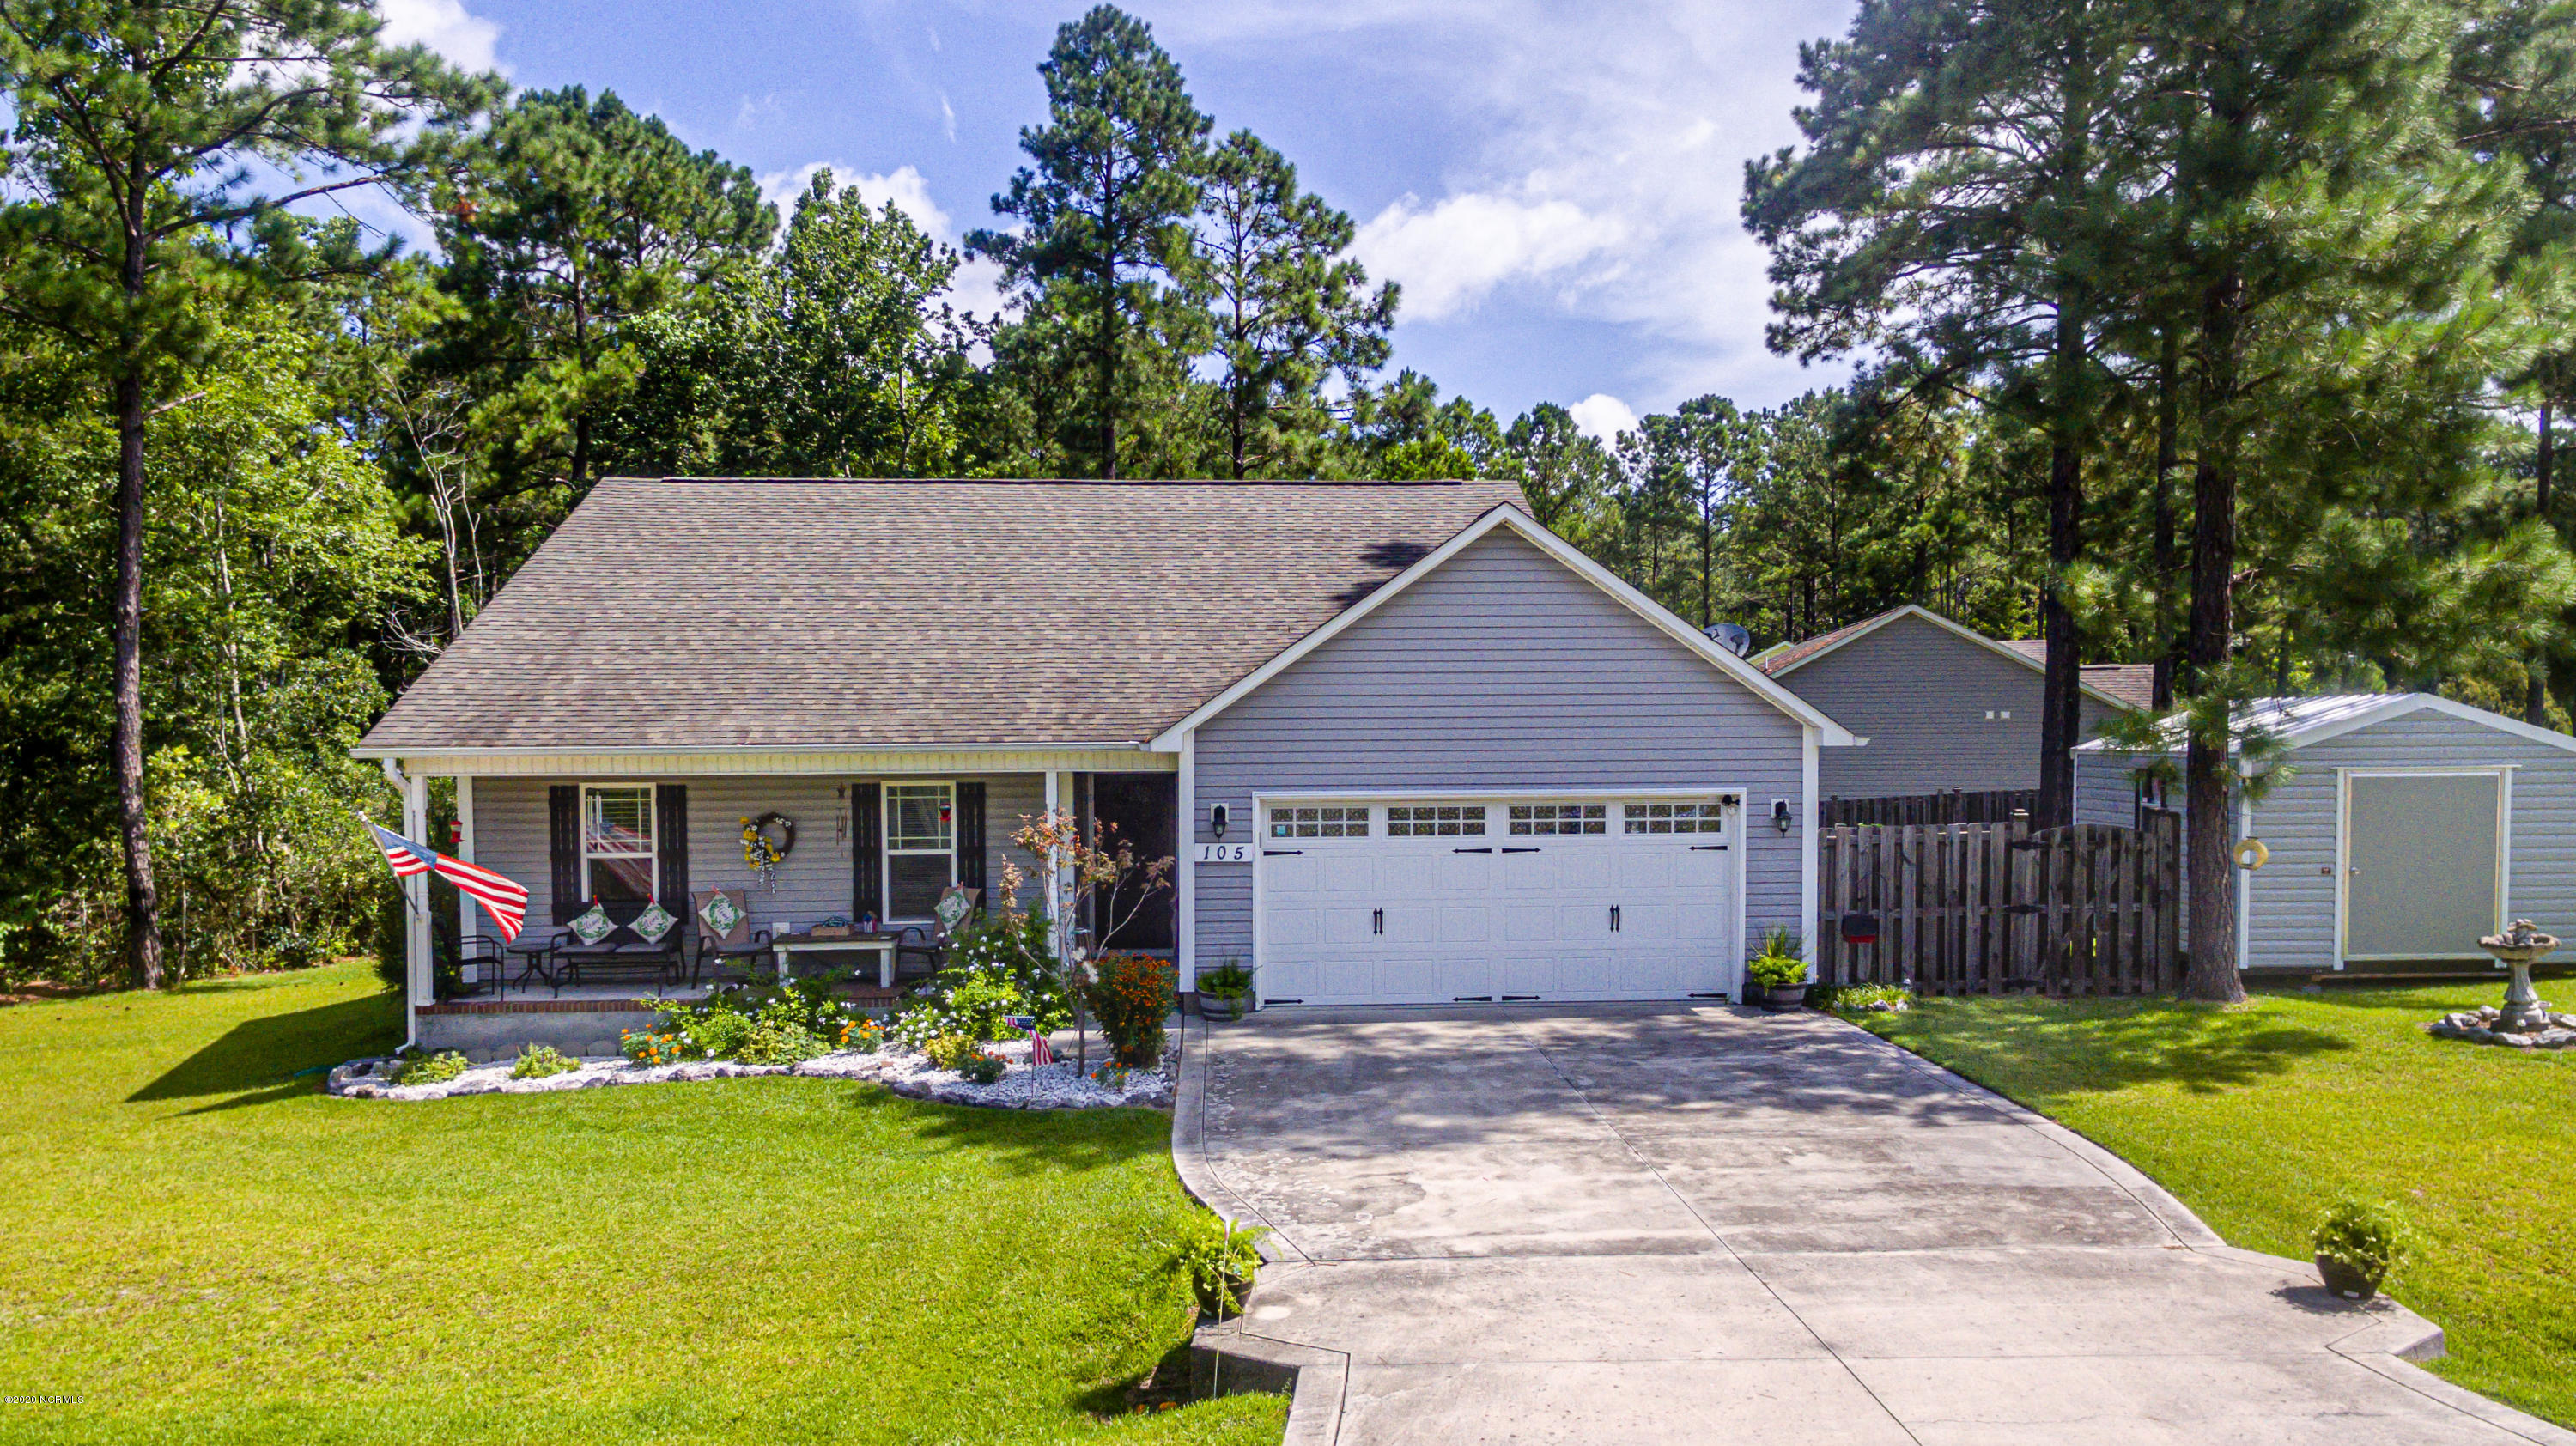 105 Chandas Place, Maple Hill, North Carolina 28454, 3 Bedrooms Bedrooms, ,2 BathroomsBathrooms,Residential,For Sale,Chandas,100230002